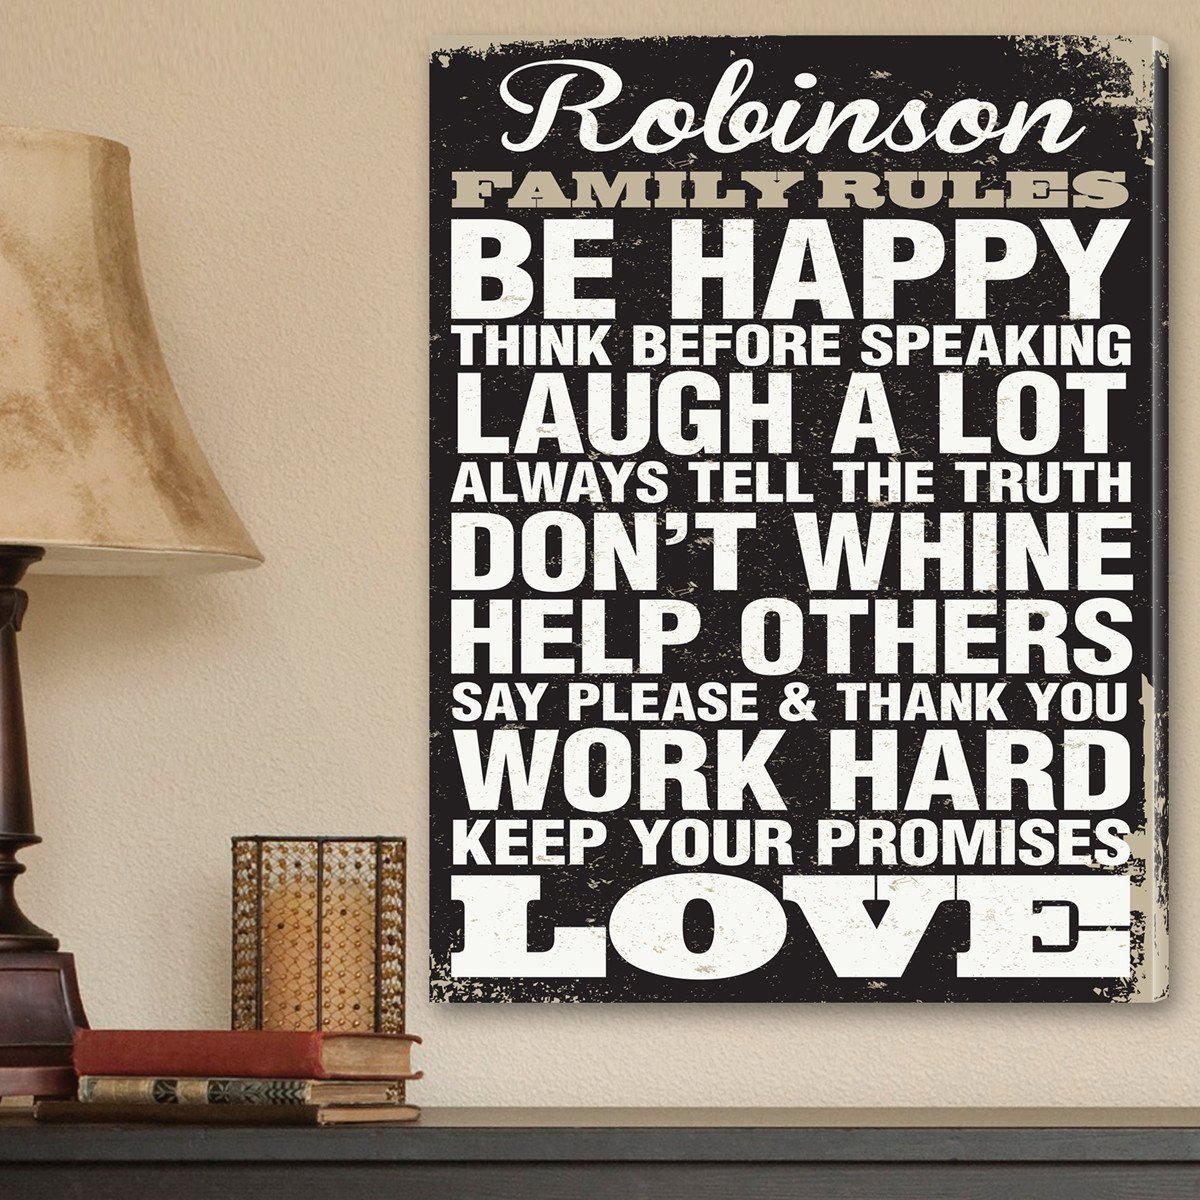 Personalized Family Rules Canvas Print - Black